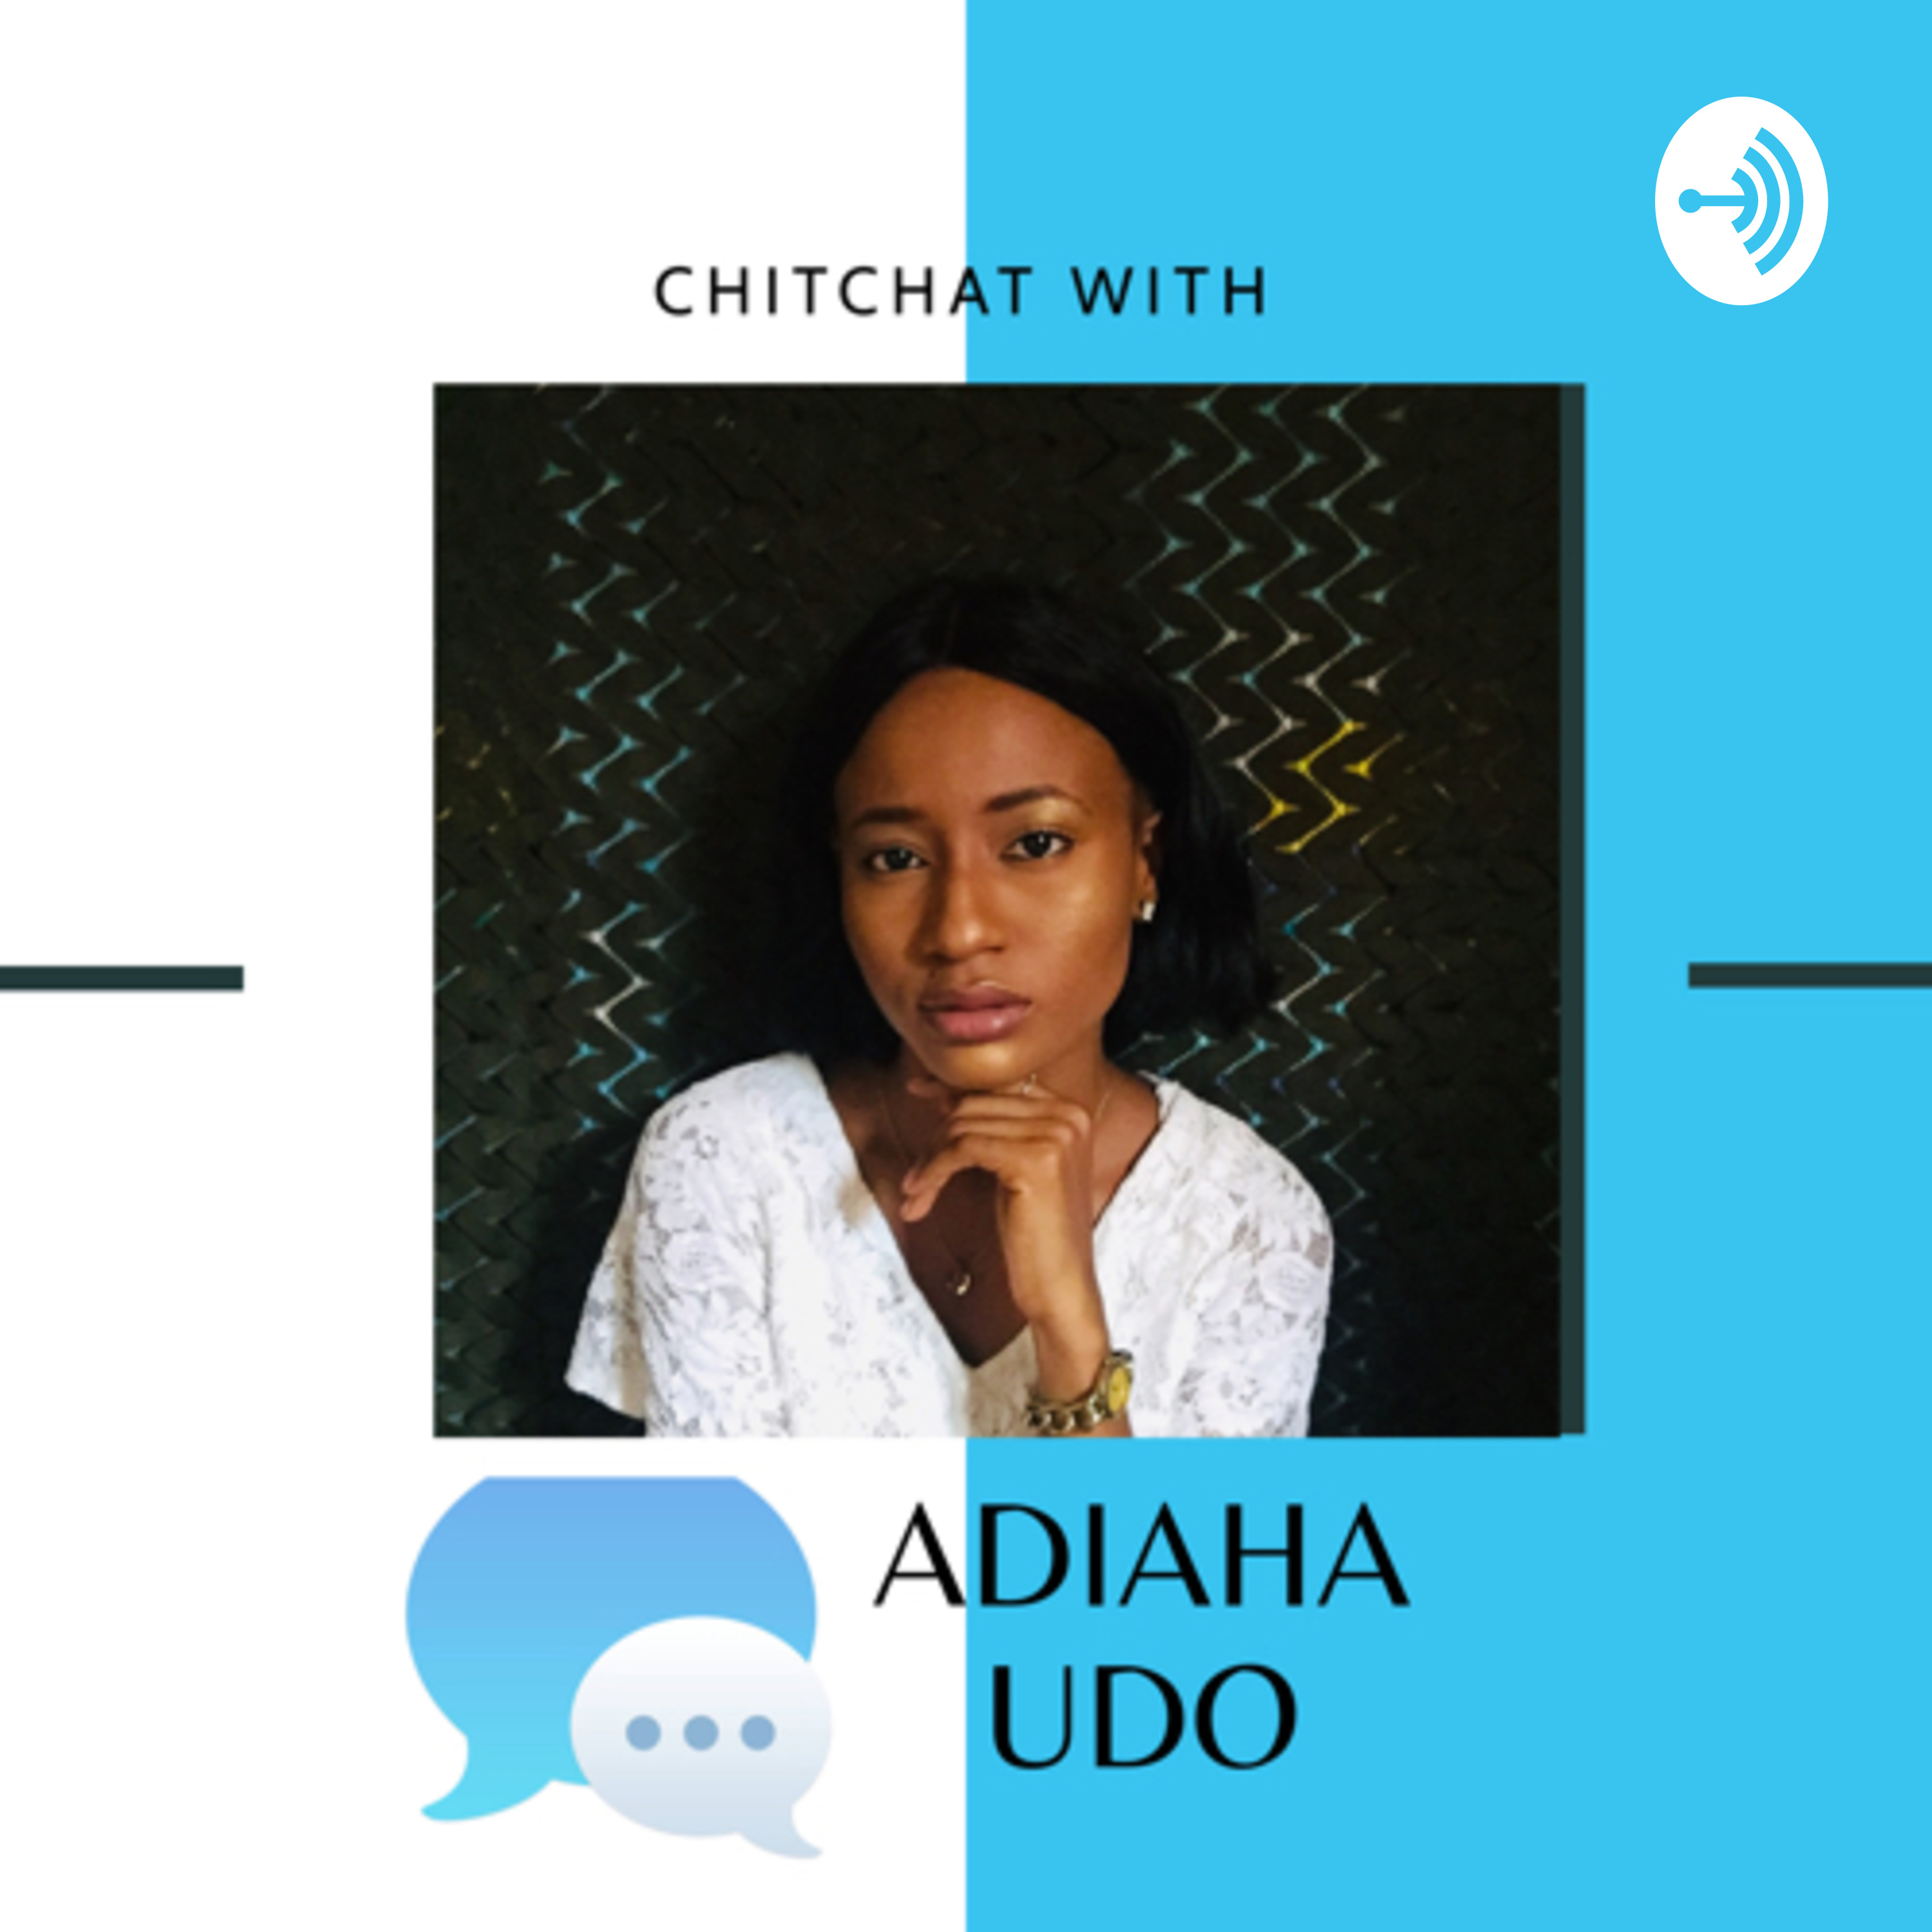 Chitchat with Adiaha Udo